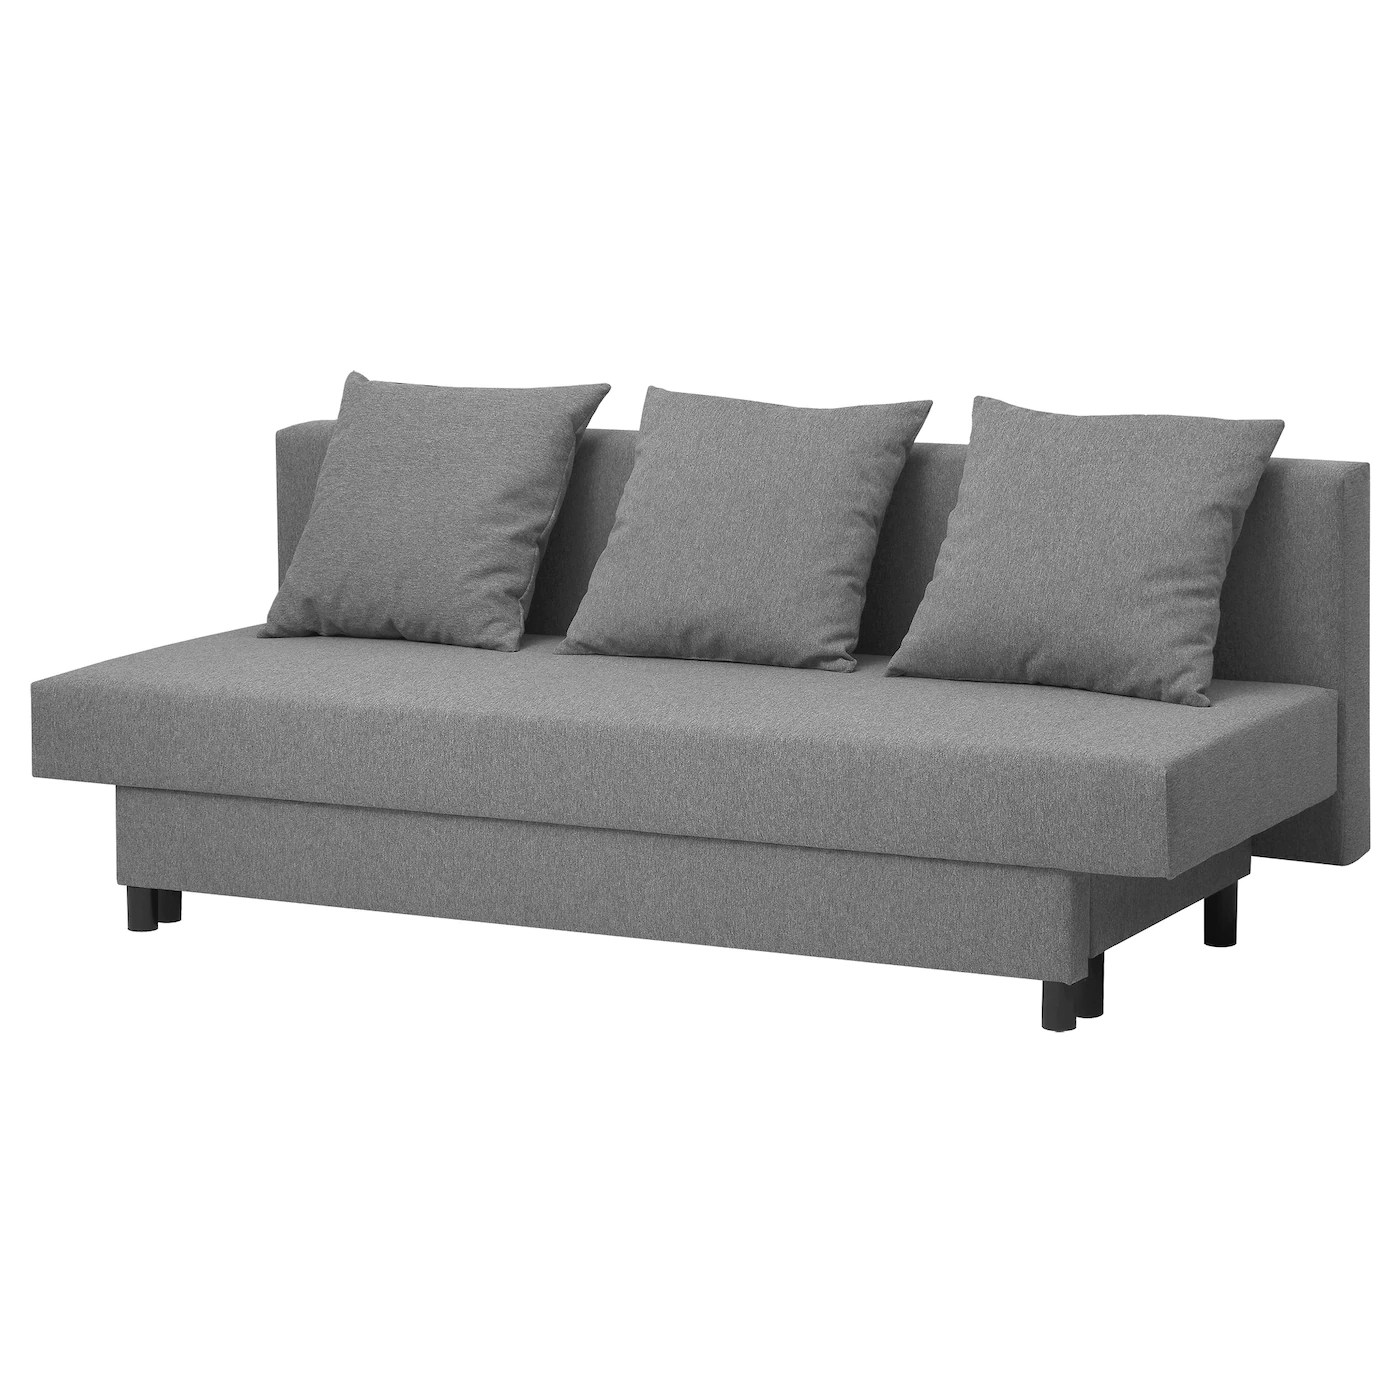 Ikea Bank Code Asarum Three Seat Sofa Bed Grey